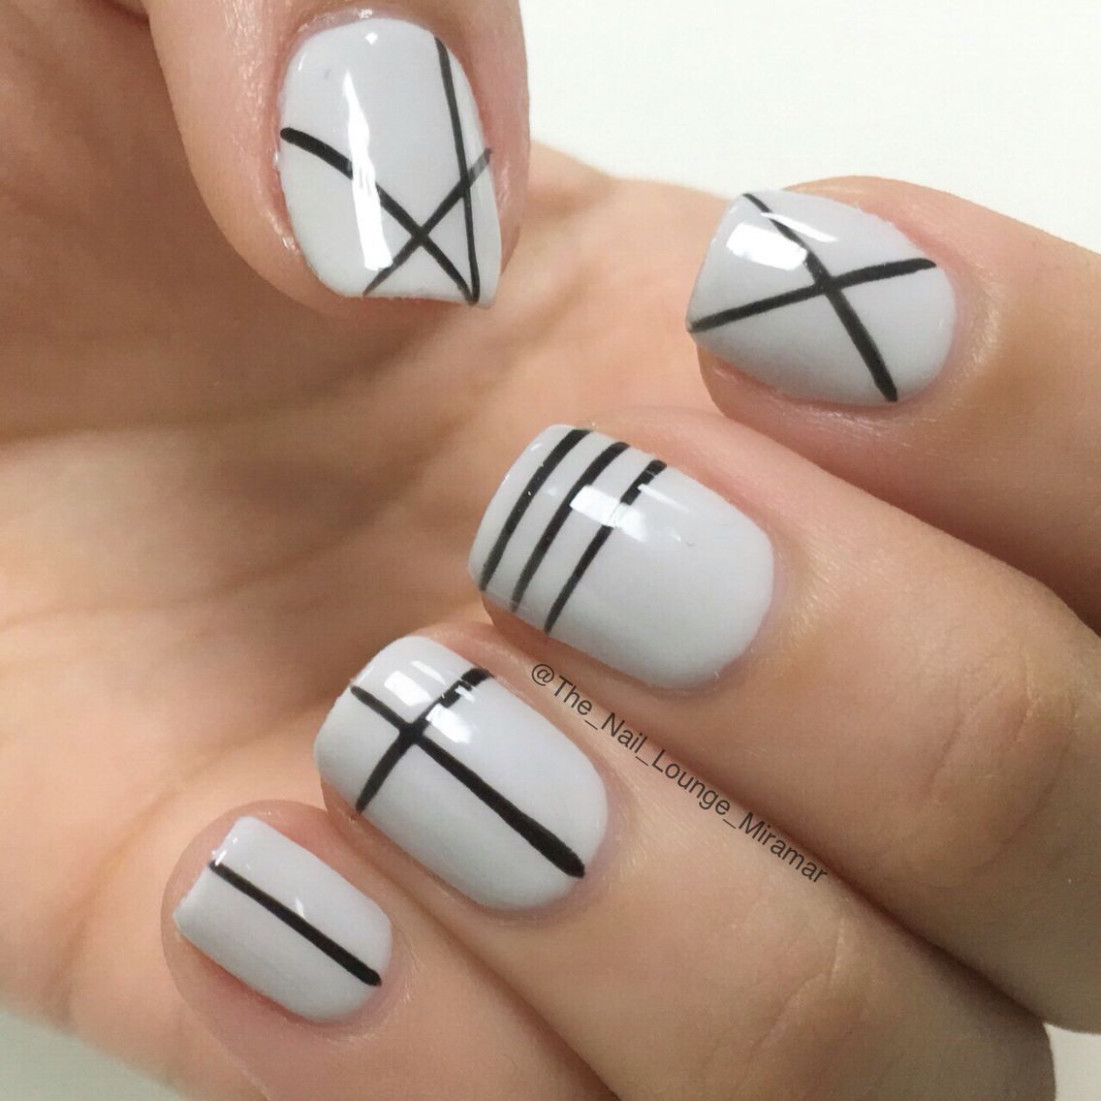 8 Cool Nail Art Ideas for 8 - Easy Nail Designs for Beginners  - Line Nail Designs 2020